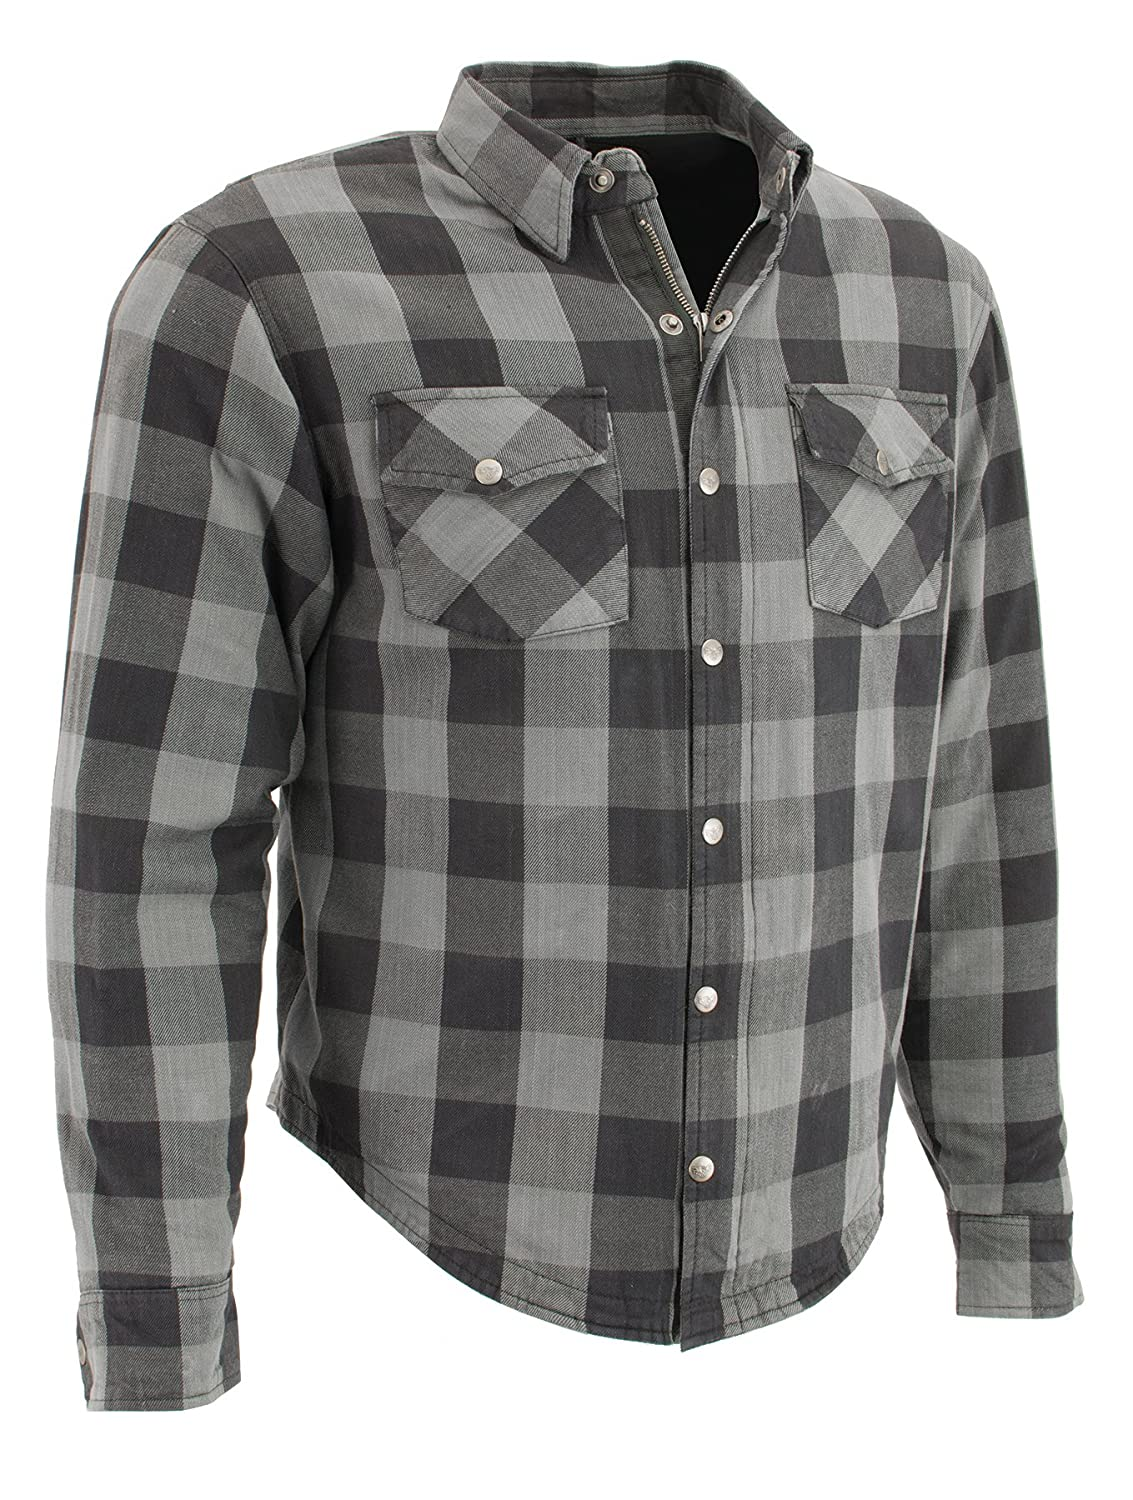 Milwaukee Performance MPM1630-BLK/GREY-L Men's Checkered Flannel Biker Shirt with Aramid Black/Grey, L